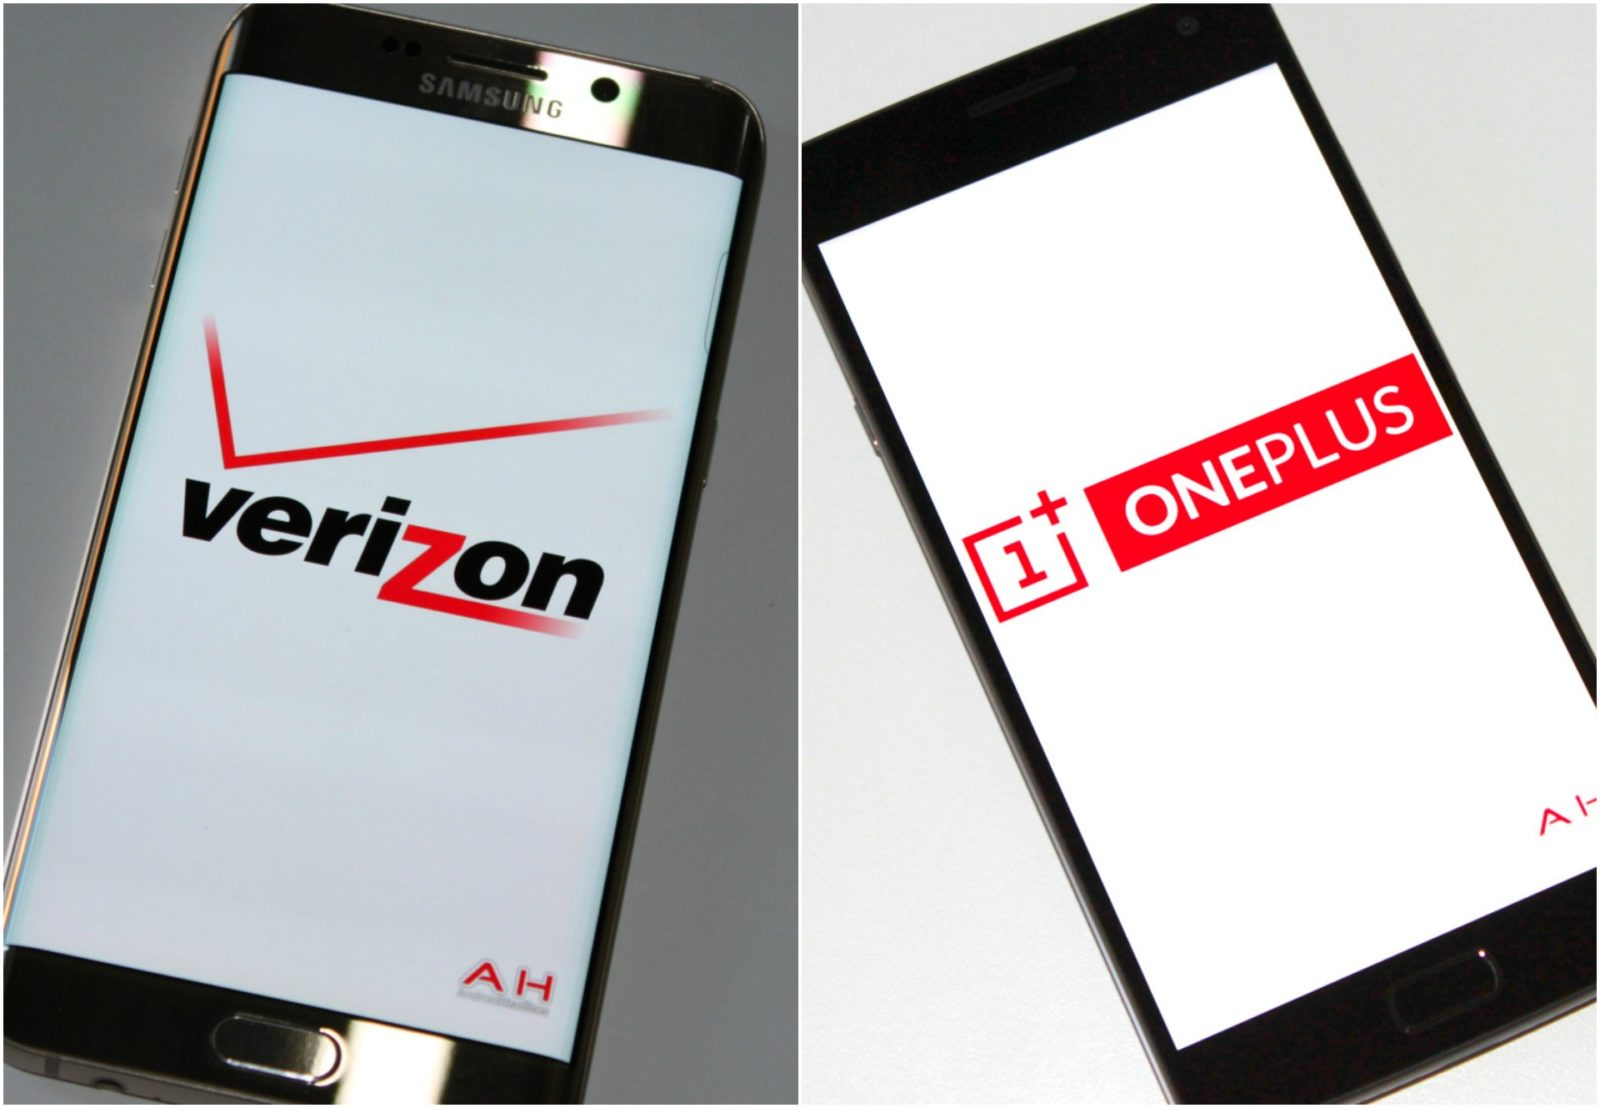 Verizon - OnePlus